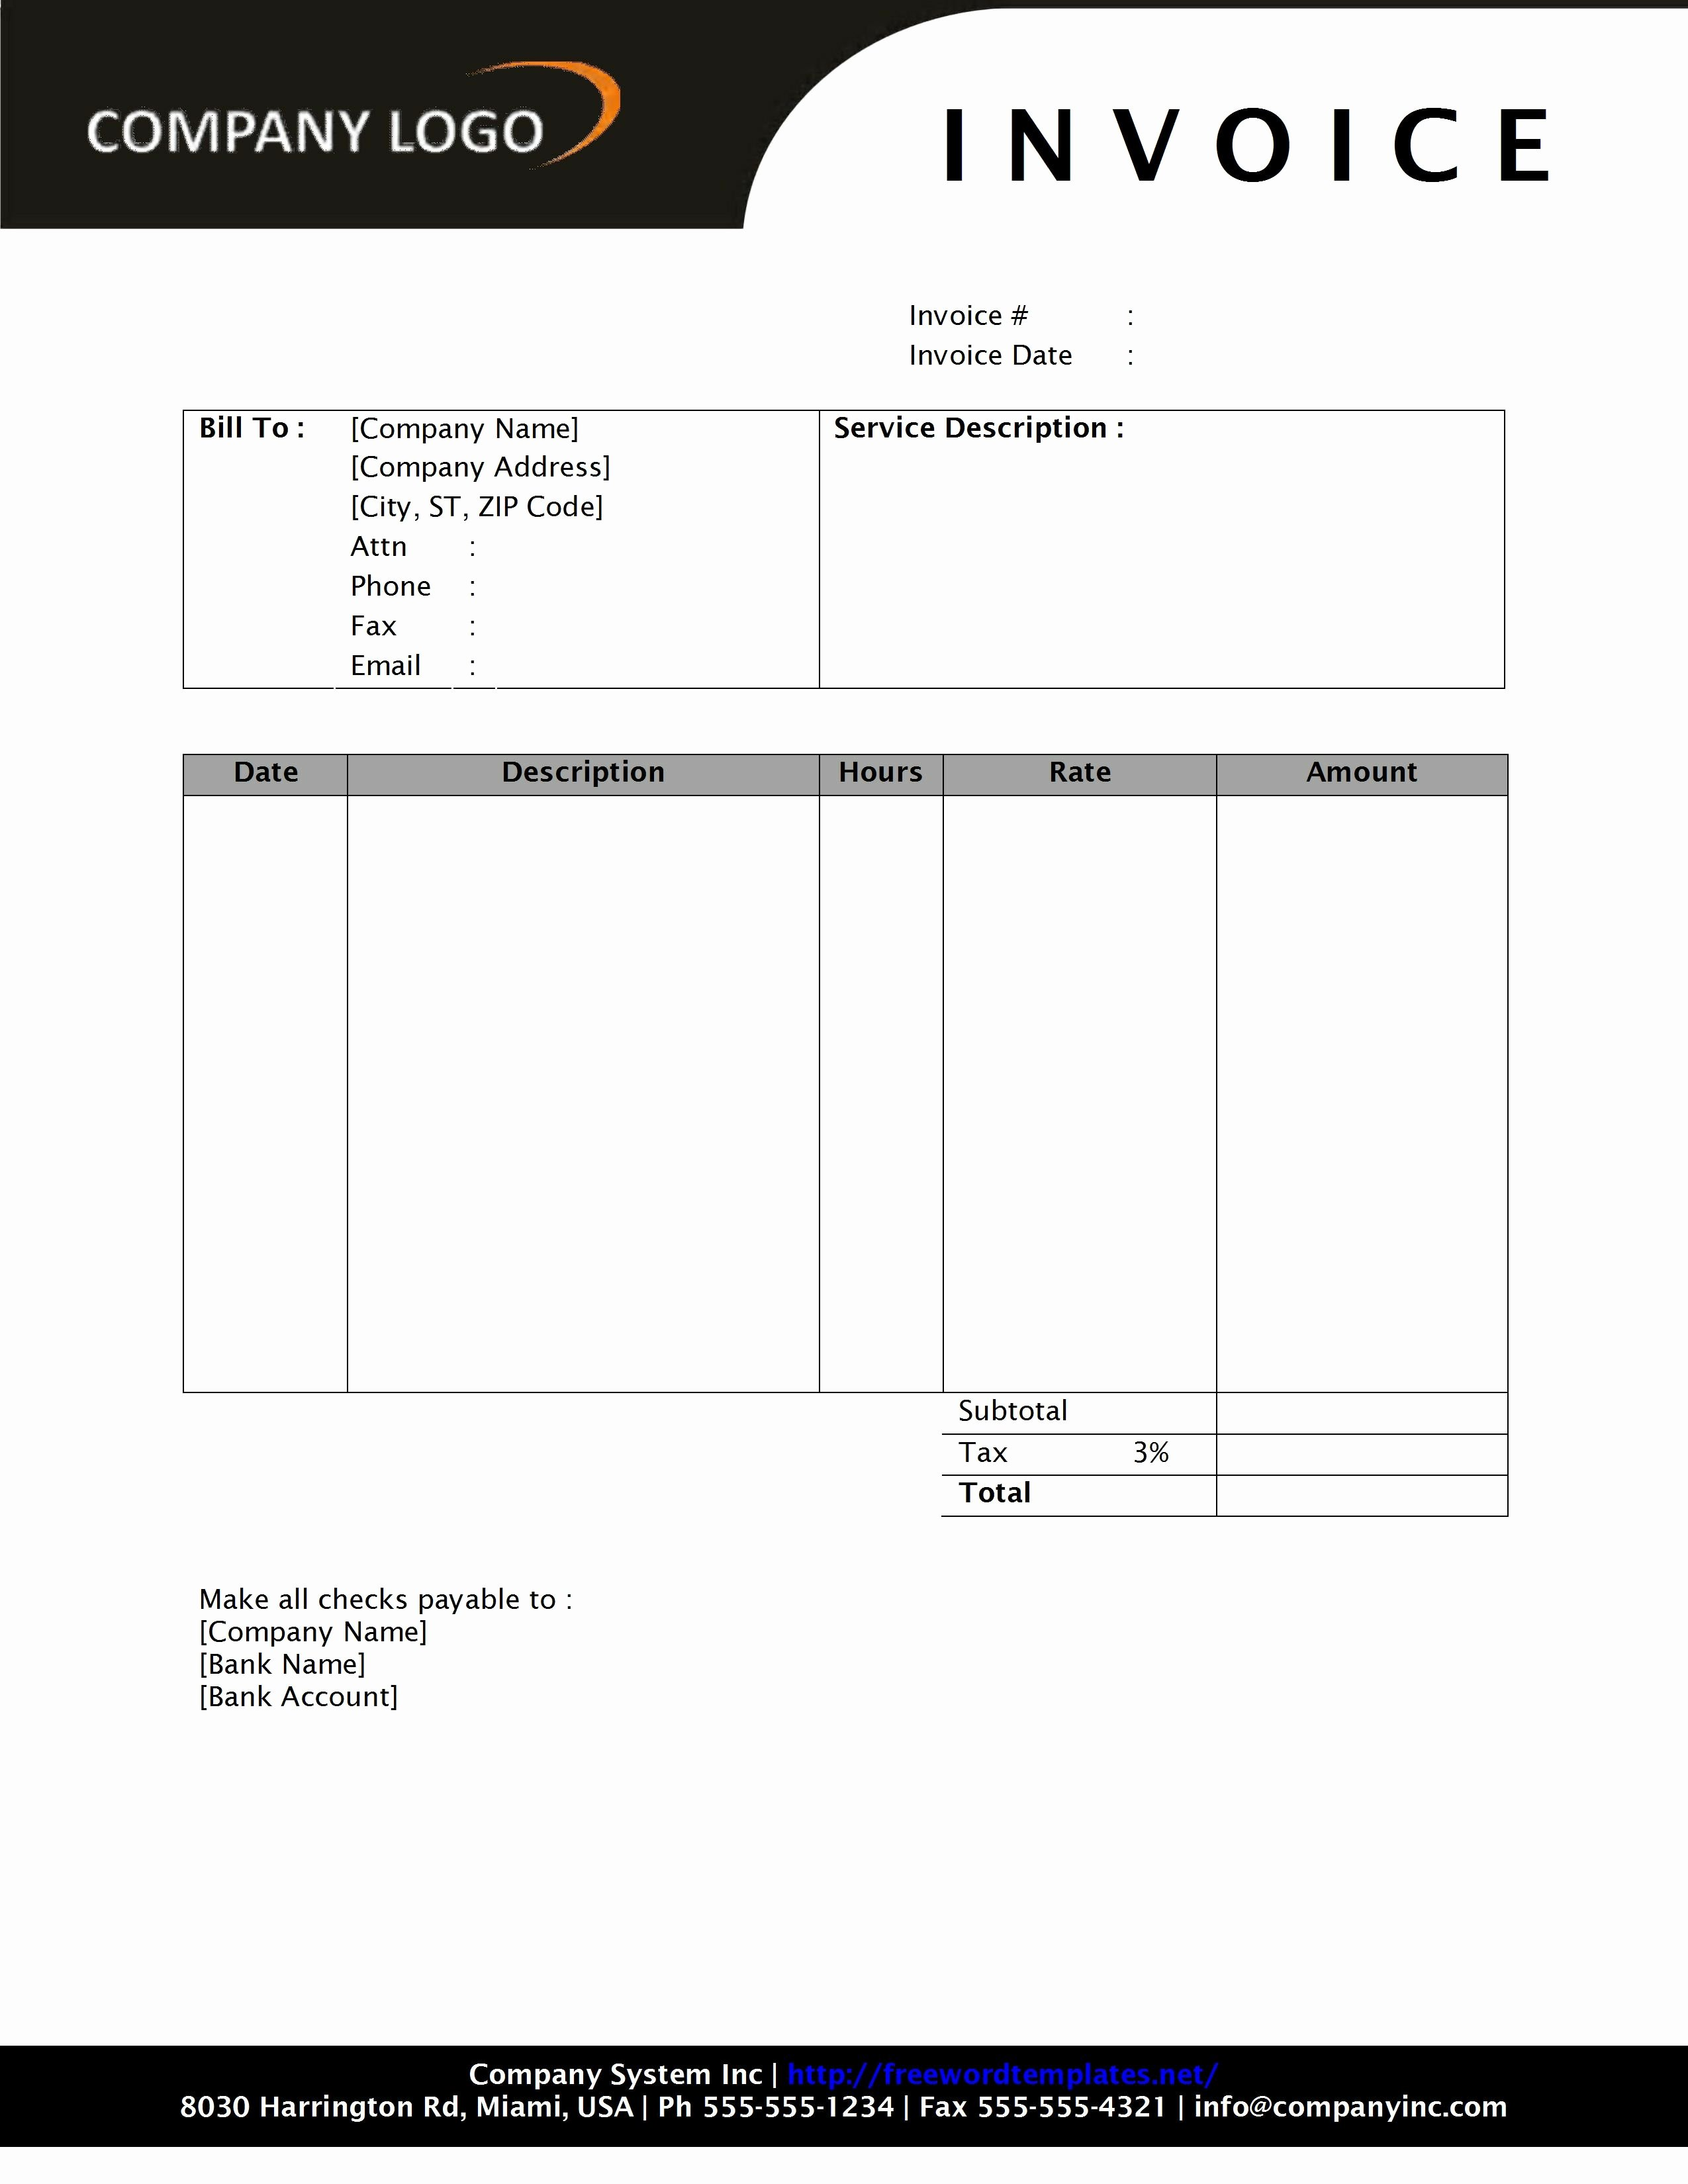 Invoice Template Word 2010 Beautiful Invoice Template Word 2010